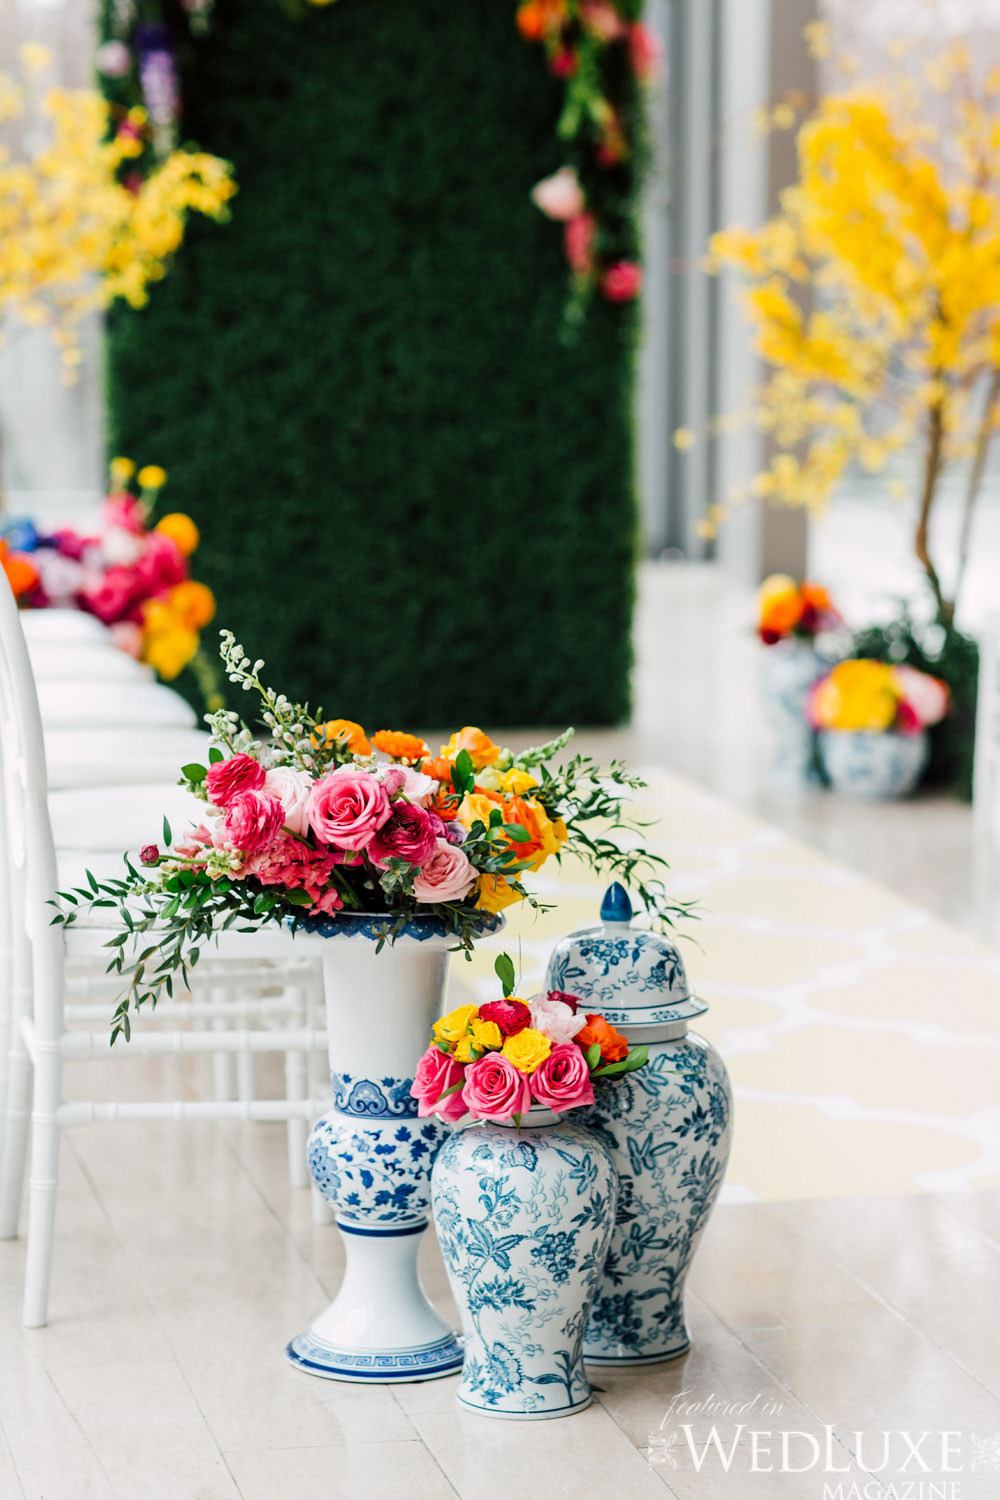 Vases/Urns - Plate Occasions